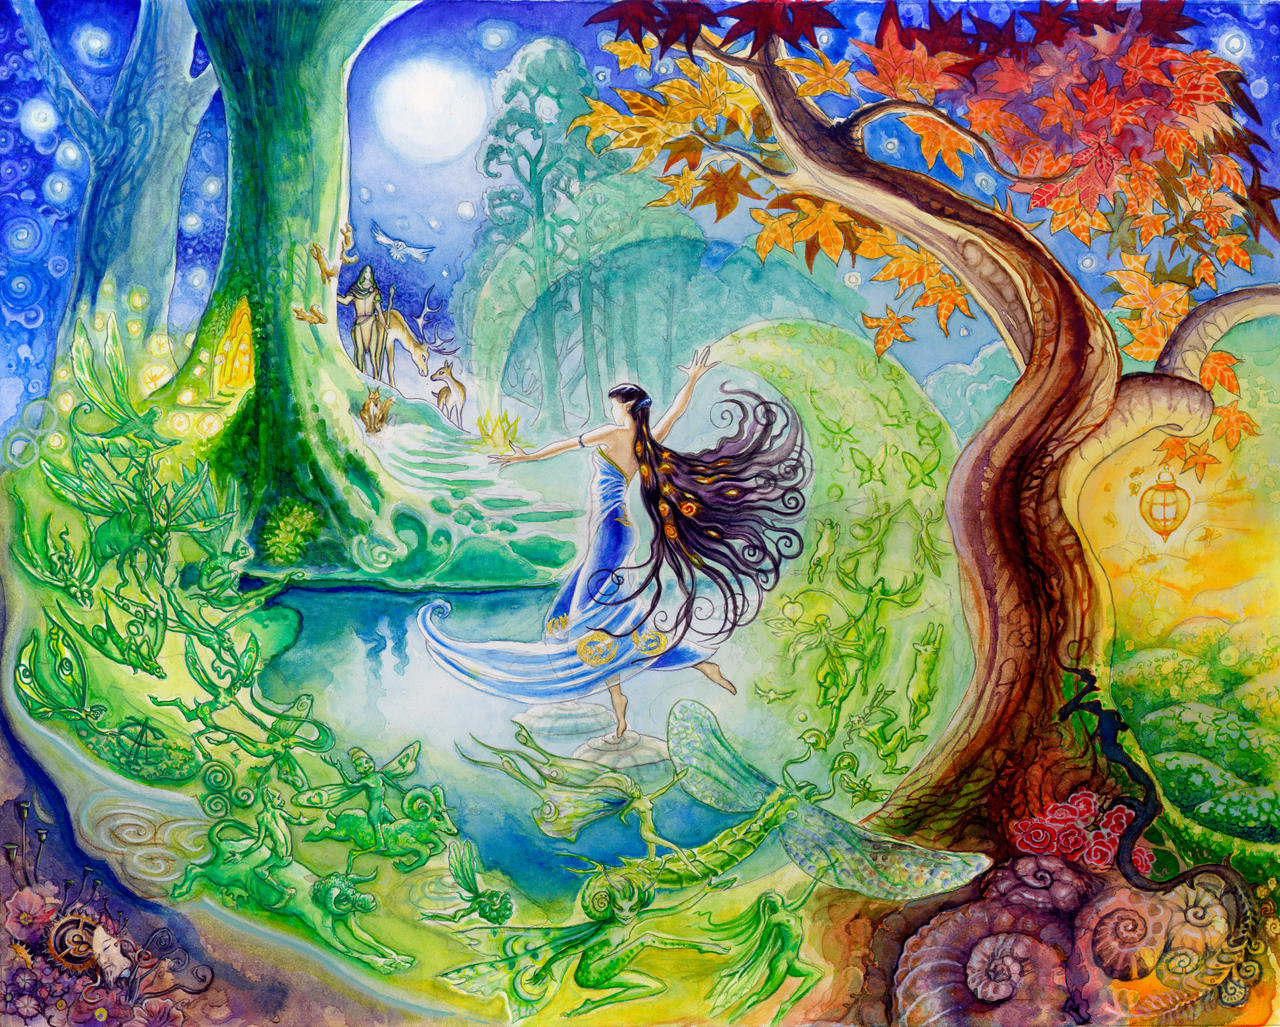 The Tale of Beren and Luthien